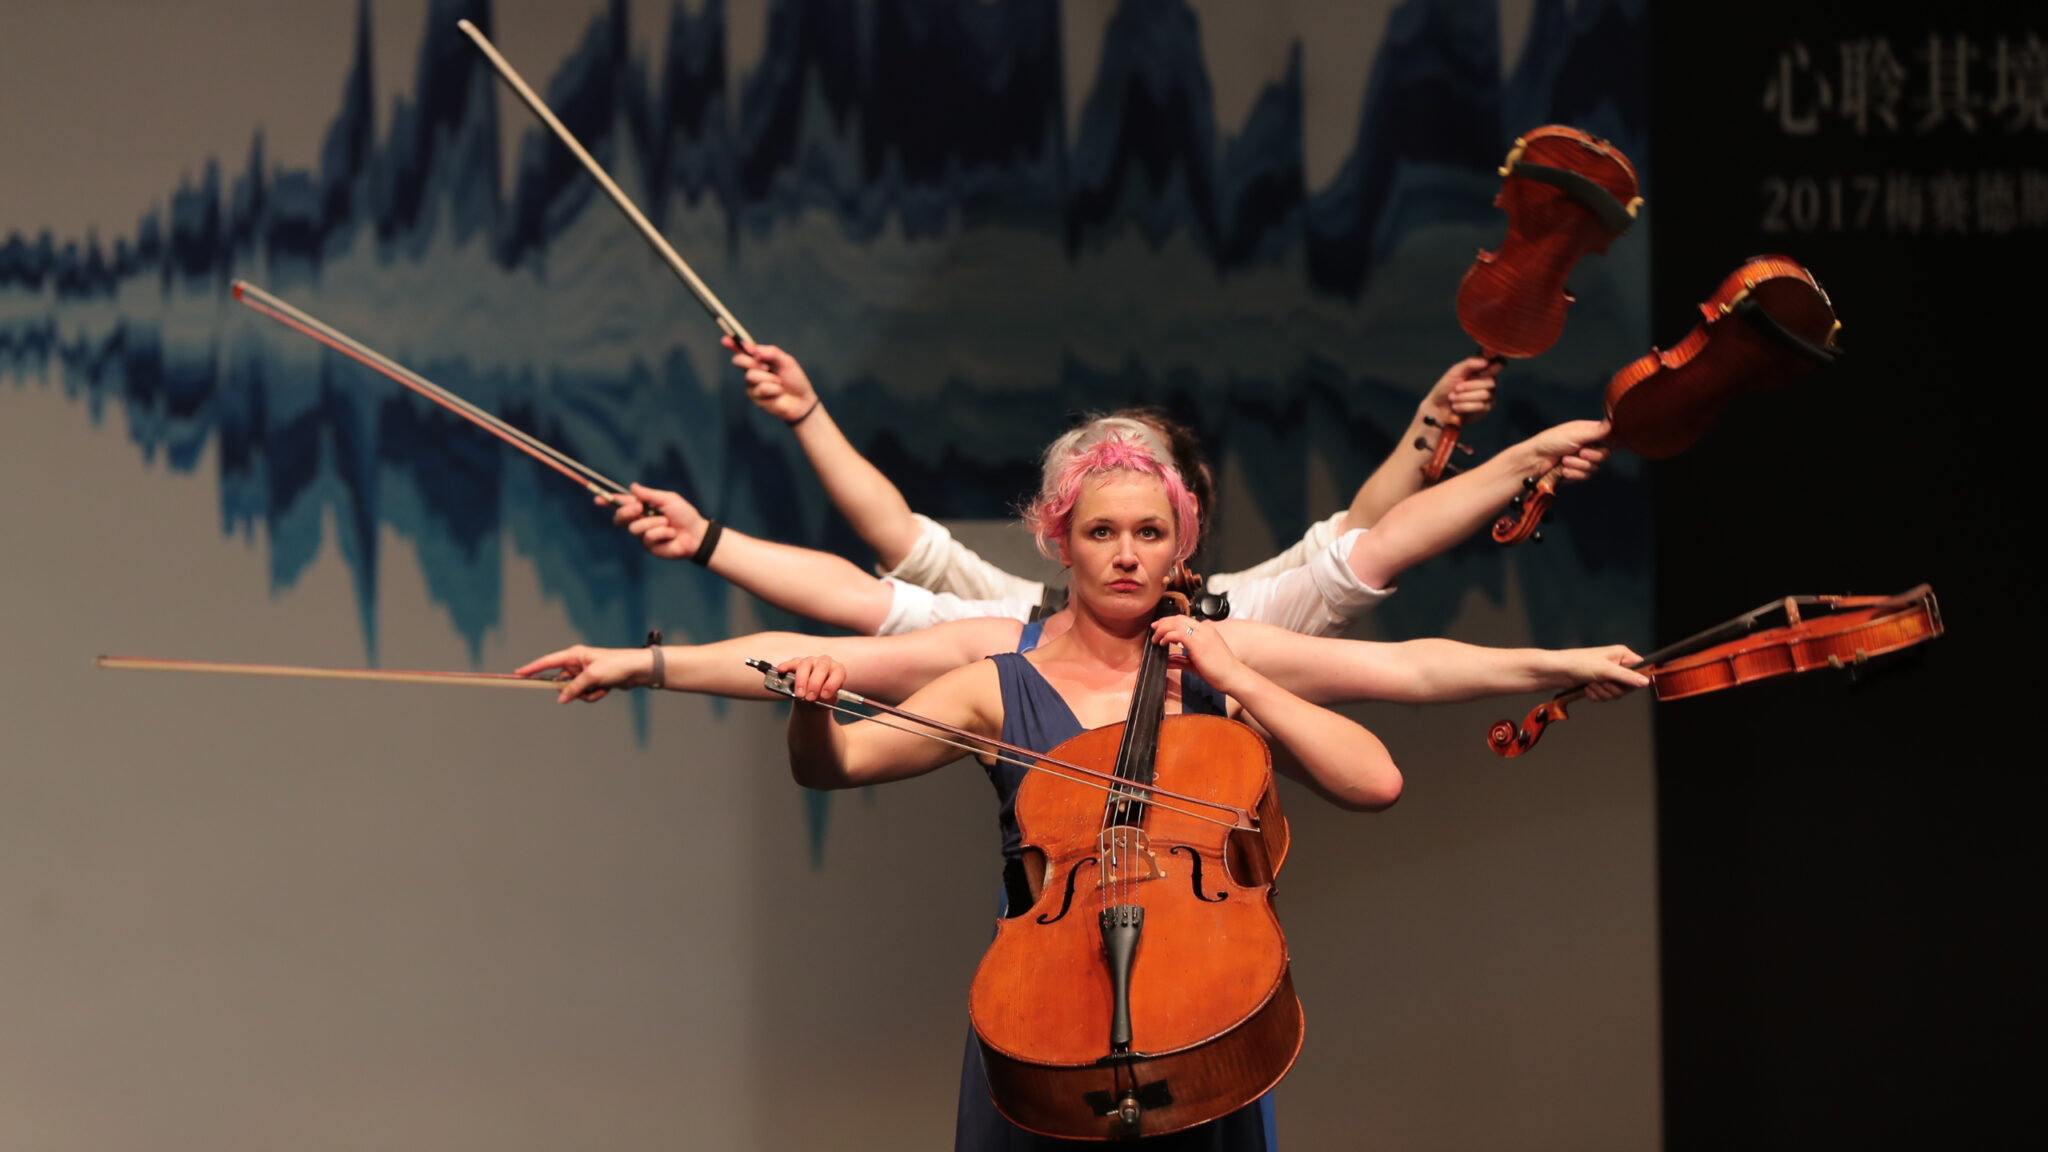 Female performer with instruments and many arms behind her